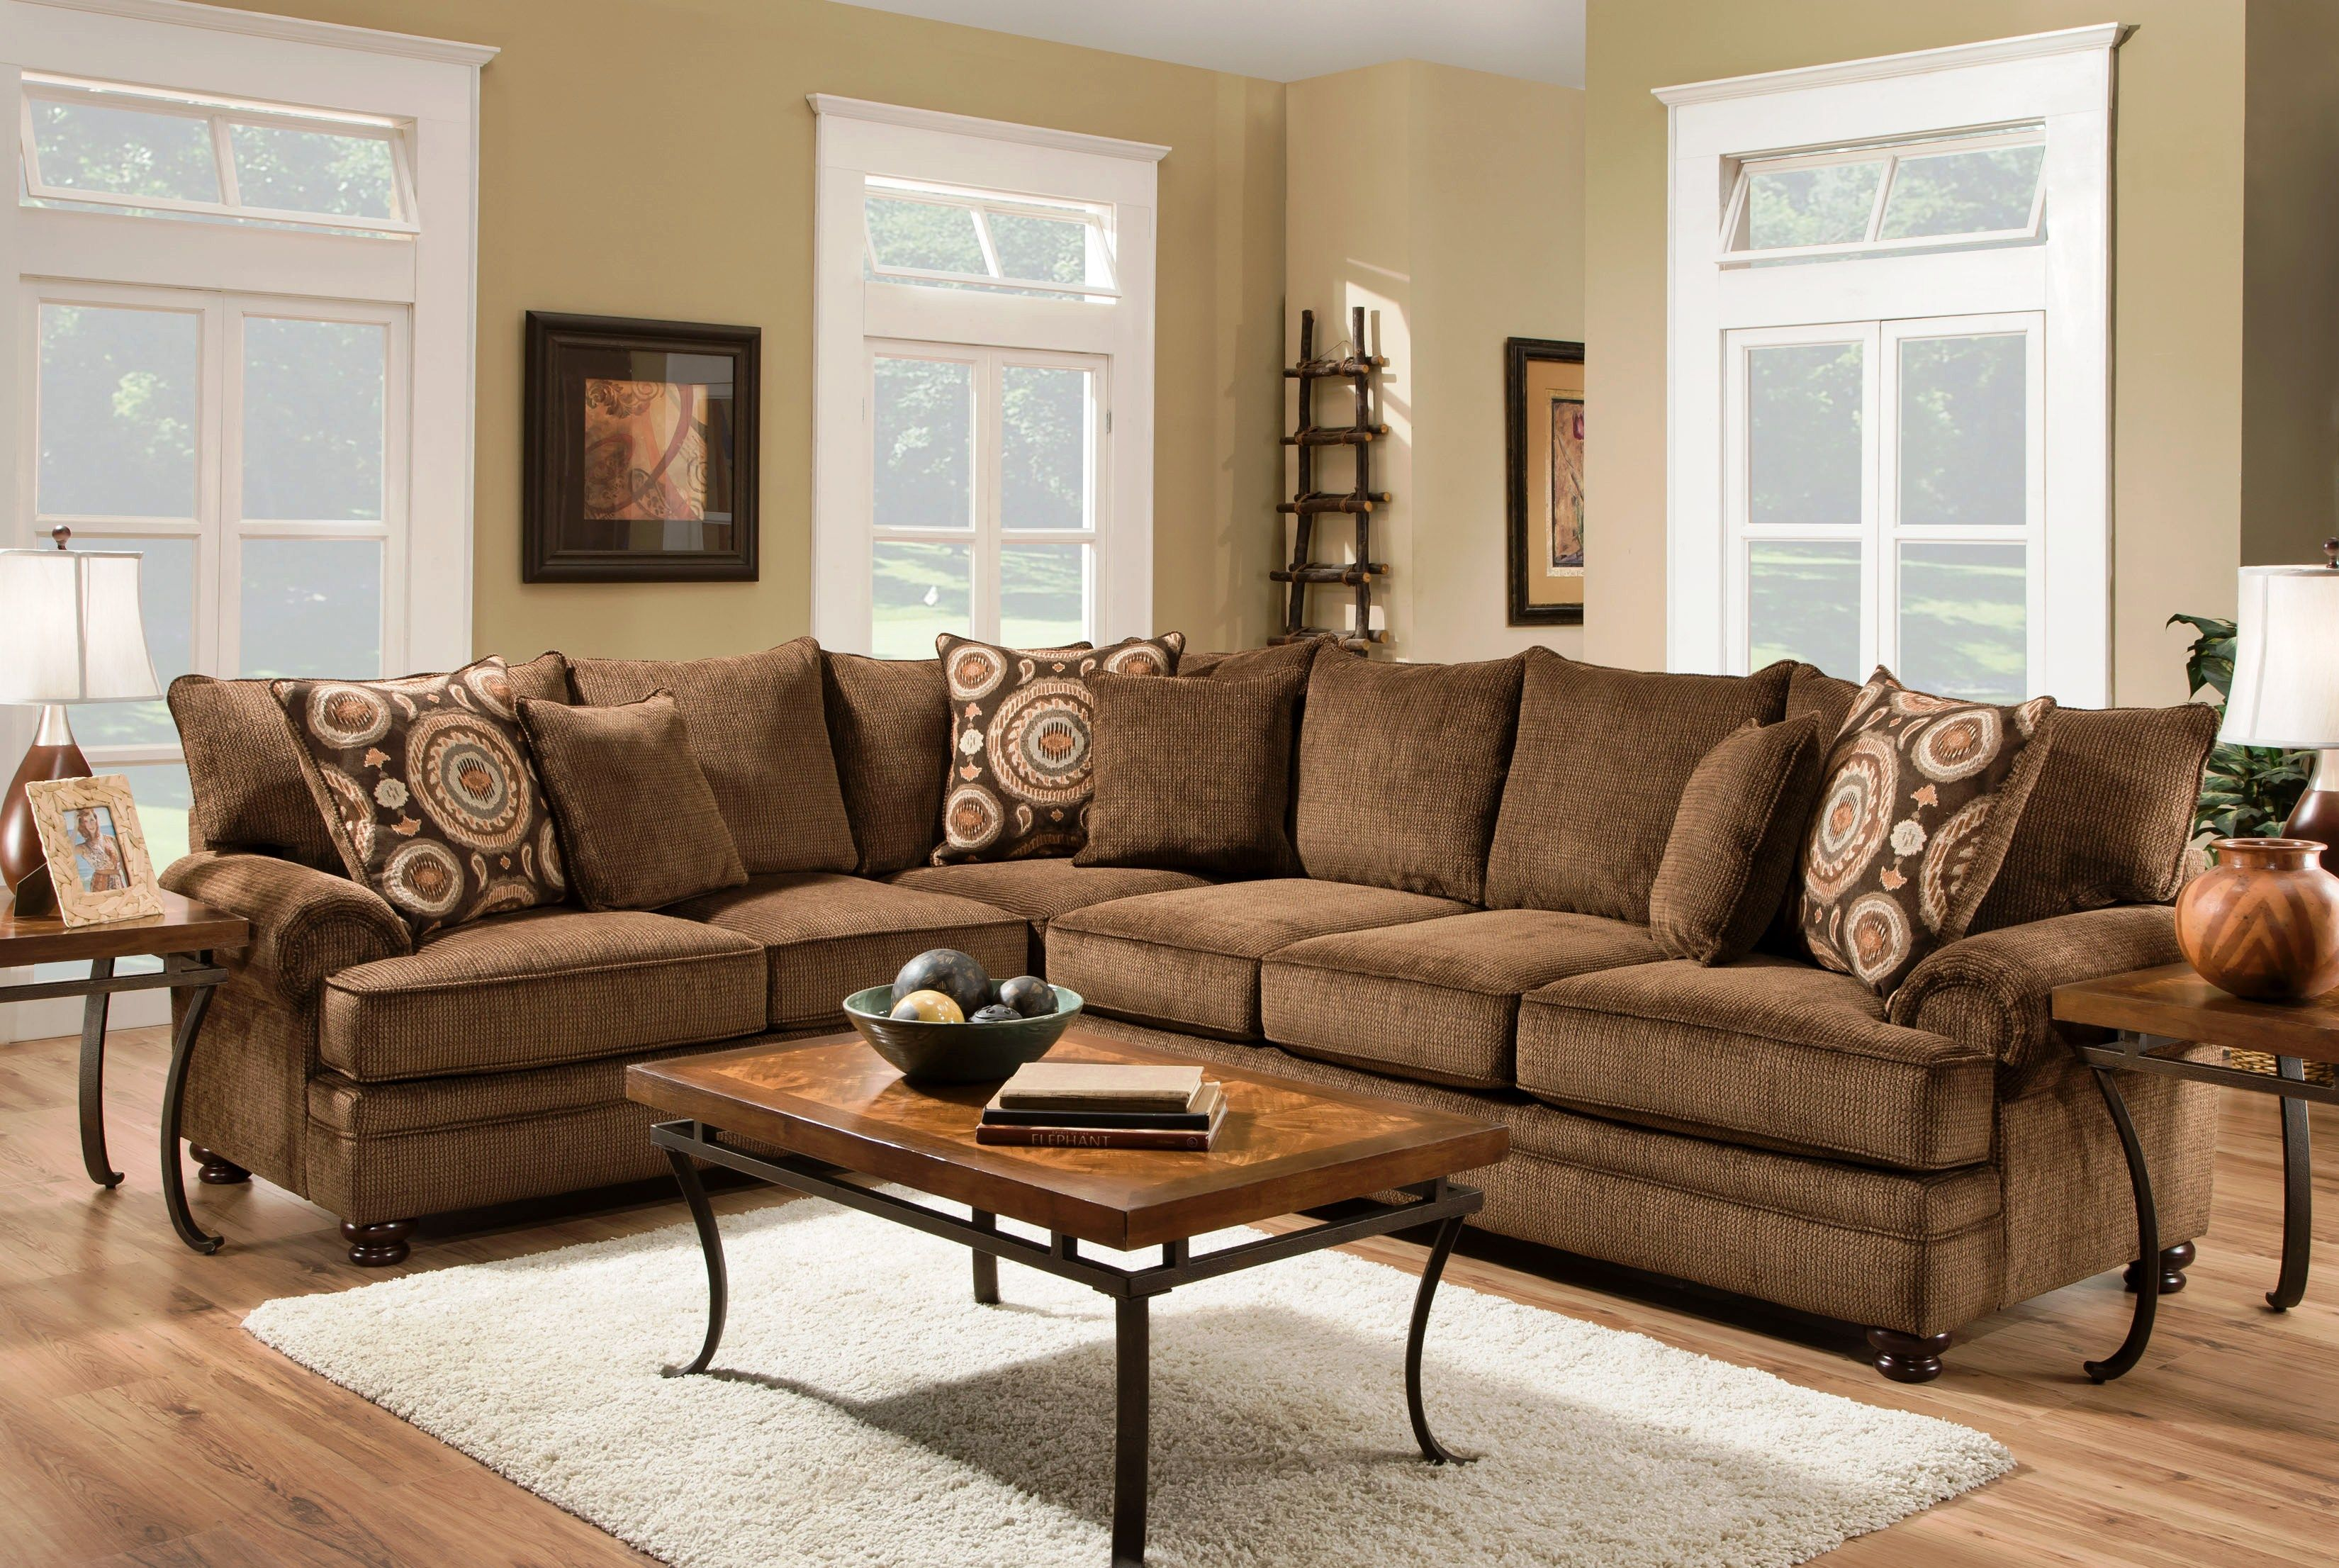 Ria Twill Chocolate 2 Piece Sectional Sofa Set with Sumatra